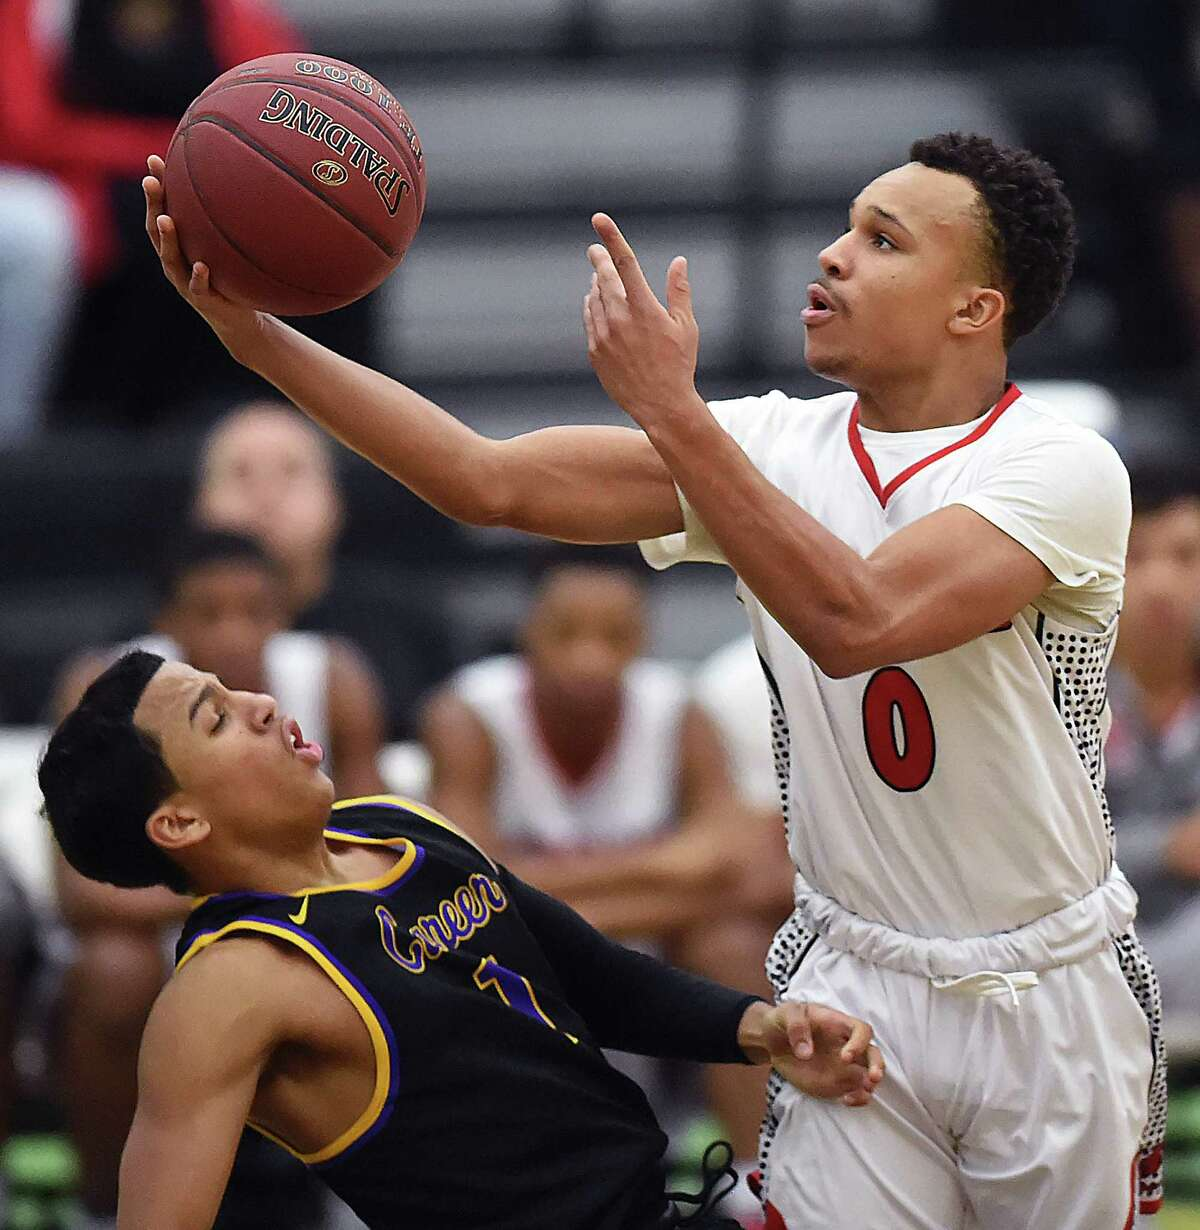 Wilbur Cross' Twane Taylor elevates for a shot against Career's Kyle Daniels, Wednesday, Jan. 17, 2018, at Floyd Little Athletic Center in New Haven. Taylor was called for an offensive charge. Wilbur Cross won, 57-50.